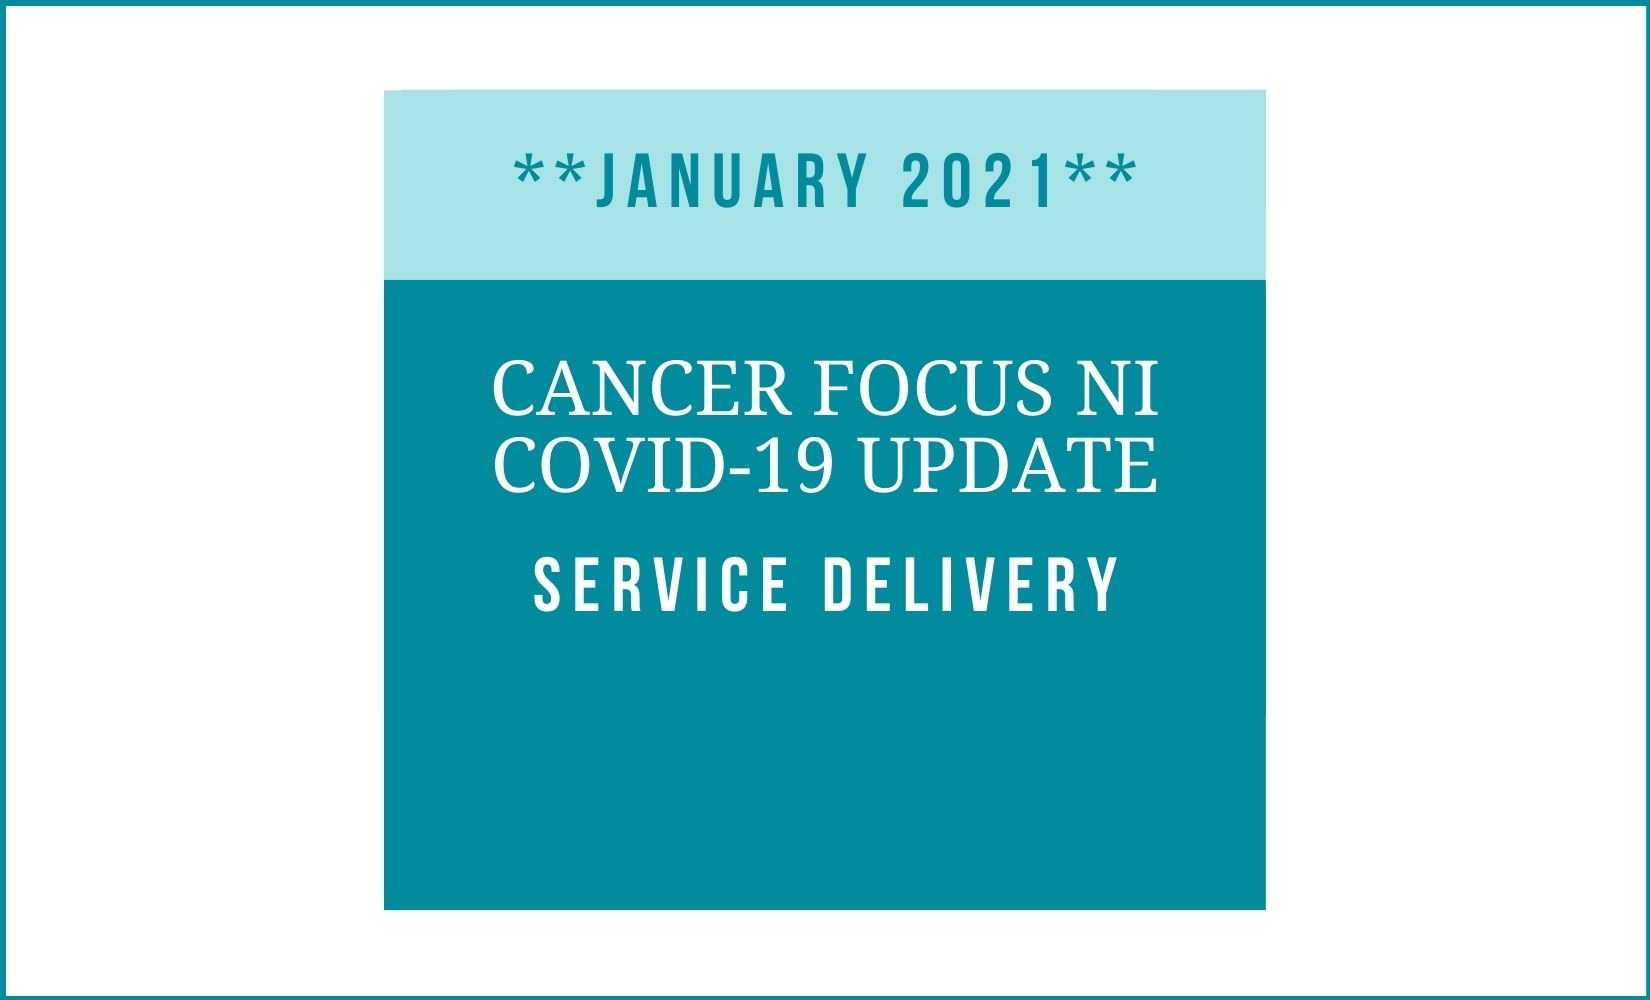 Cancer Focus NI COVID-19 update – January 2021